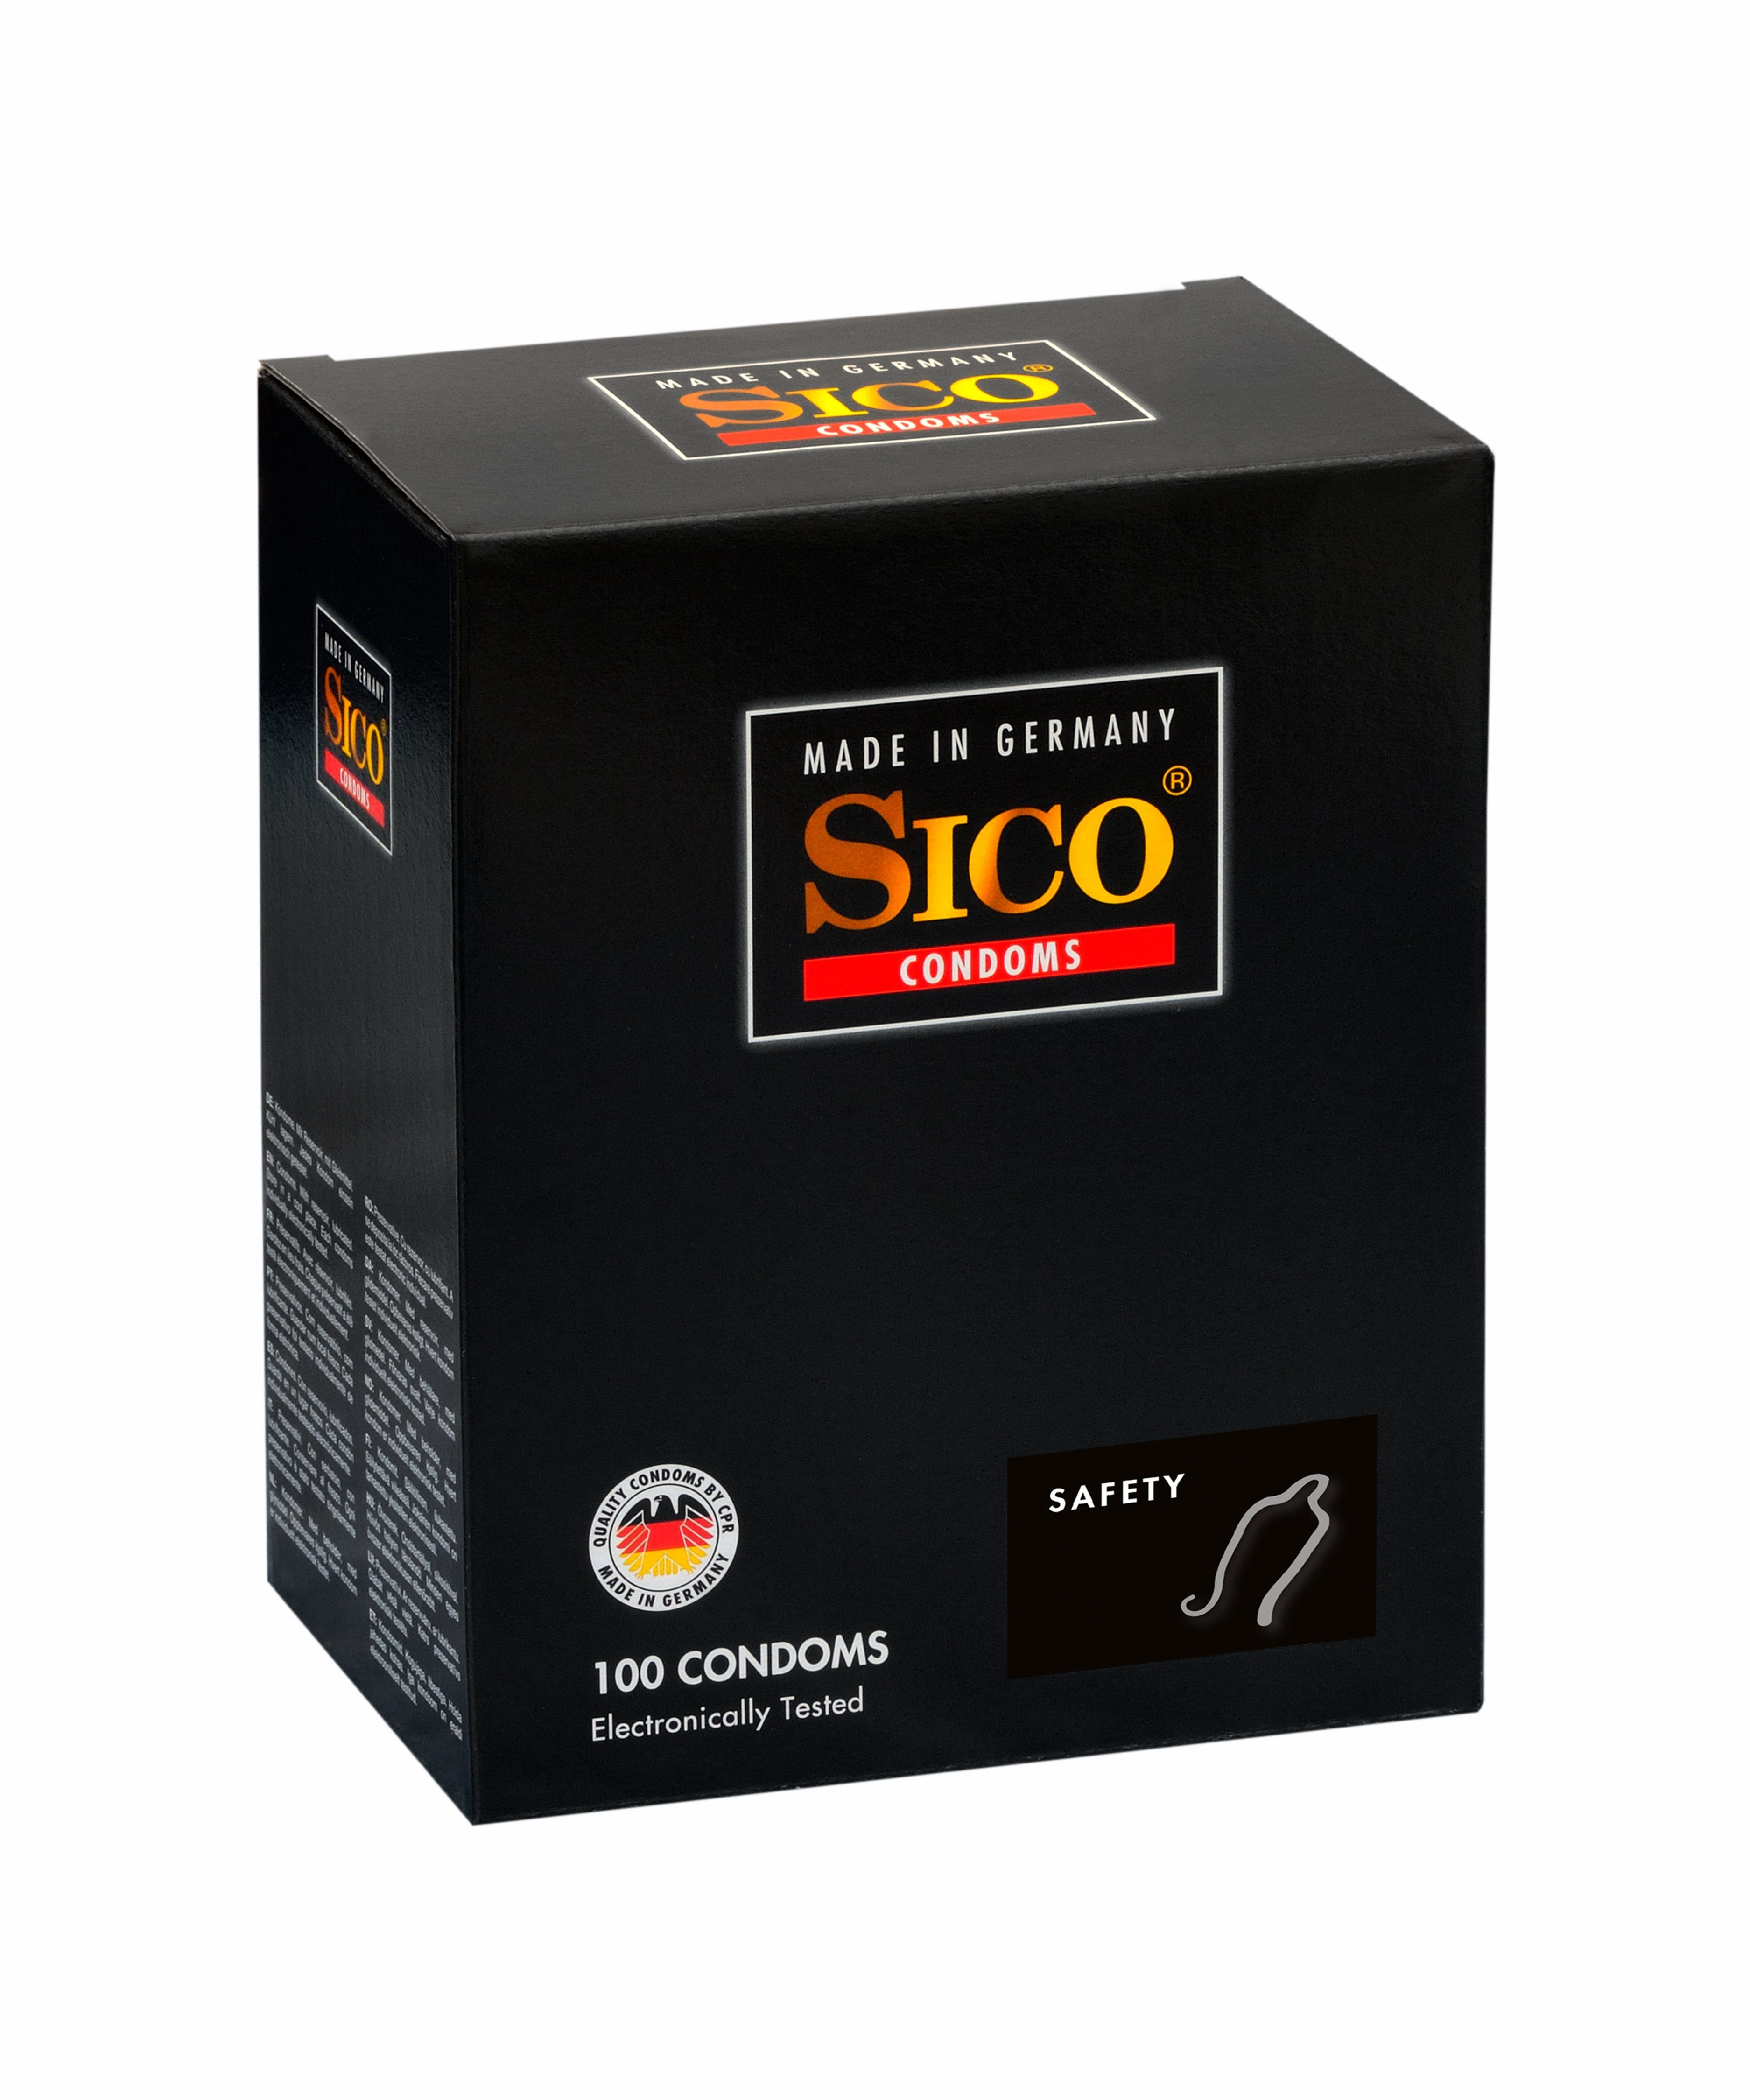 SICO 100 Kondome made in Germany »Safety, 100er Box«